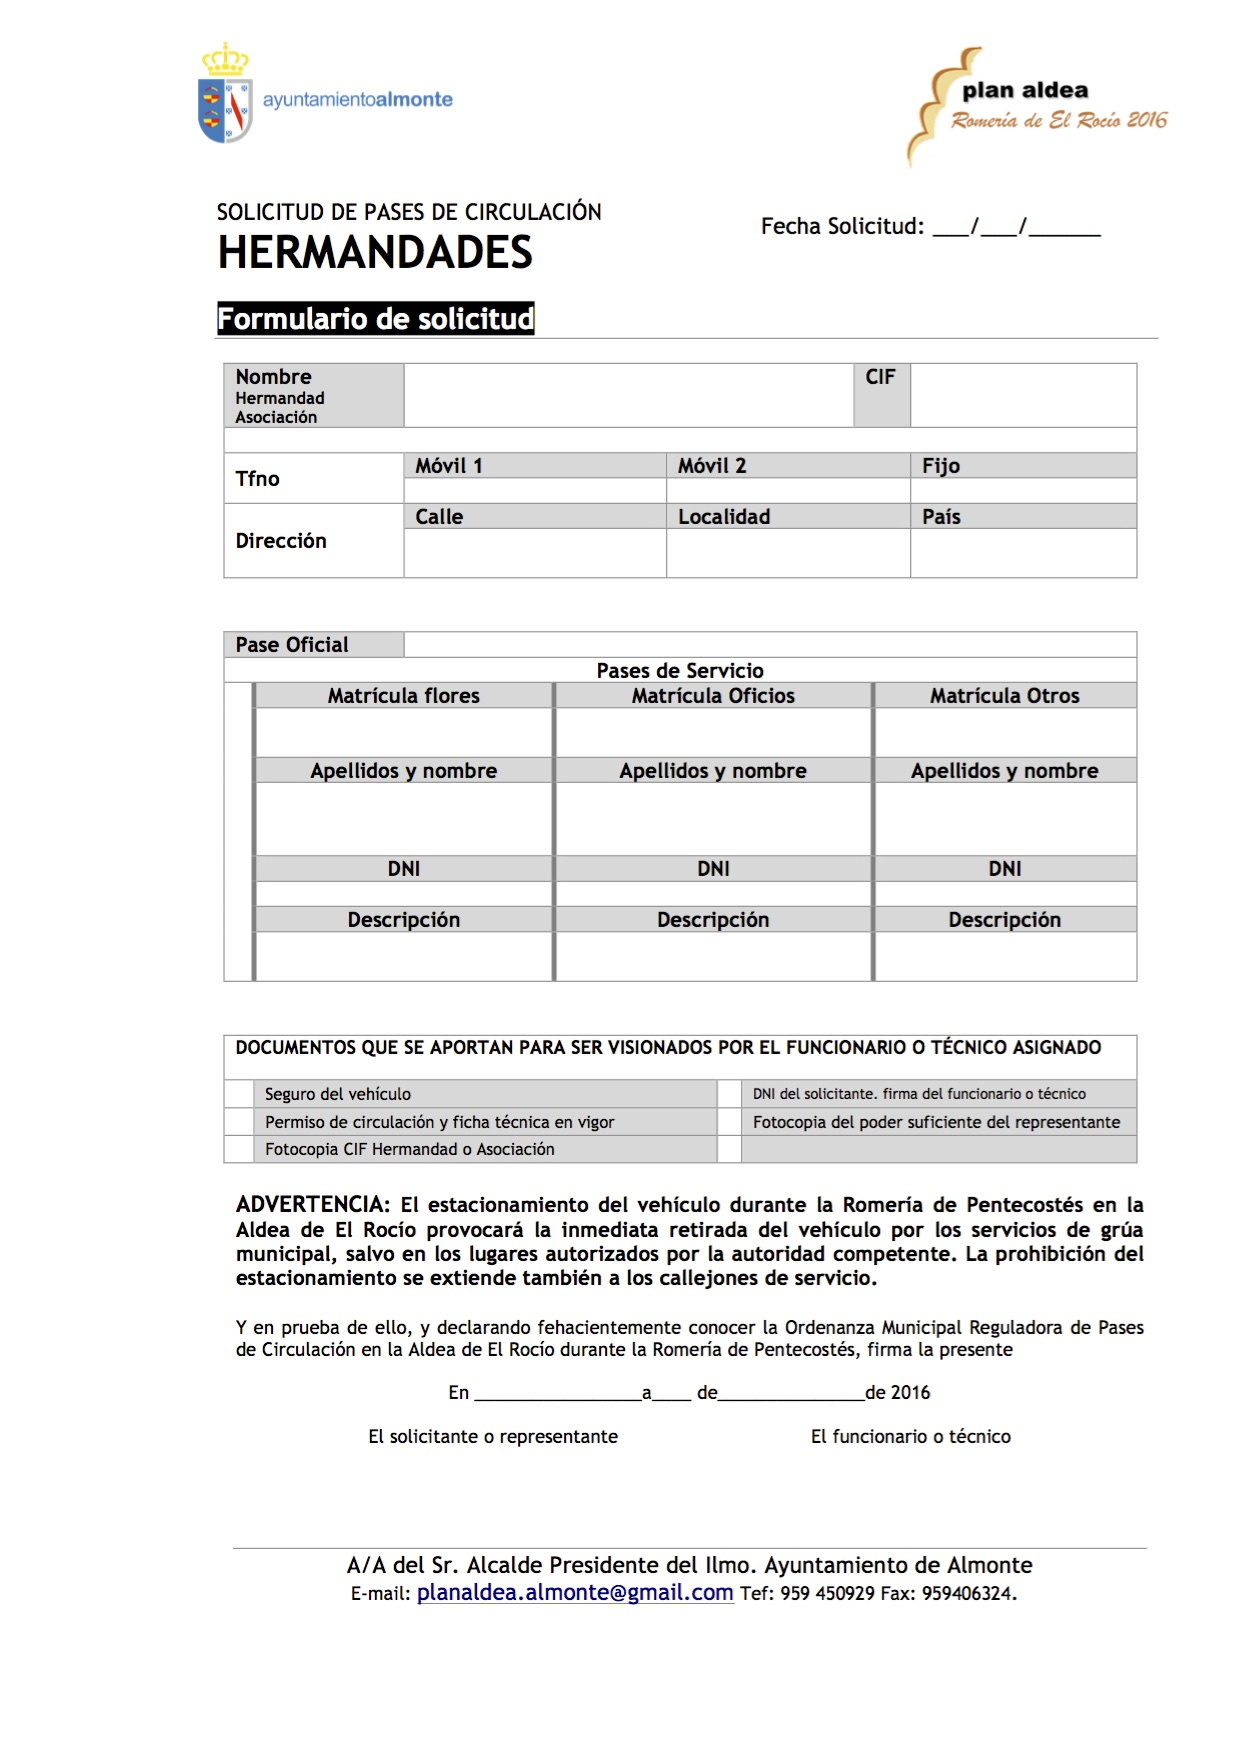 Solicitud-pases-Hermandades-2016-re